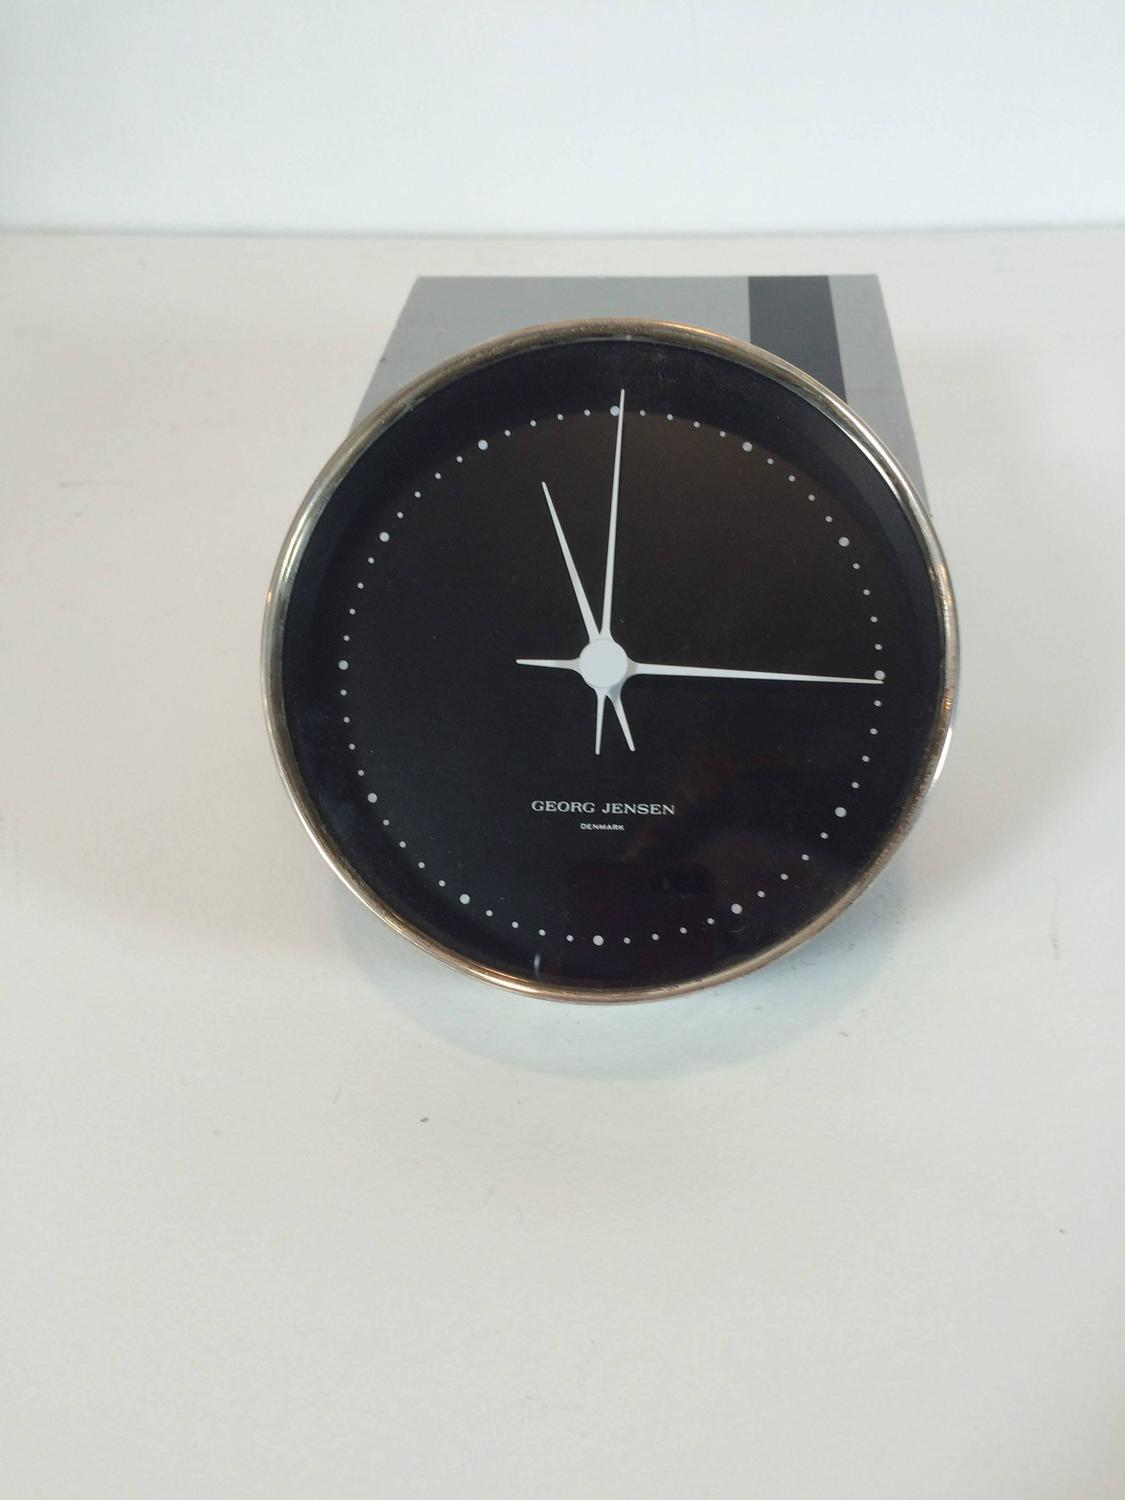 georg jensen sterling silver wall clock dead stock in box for sale at 1stdibs. Black Bedroom Furniture Sets. Home Design Ideas